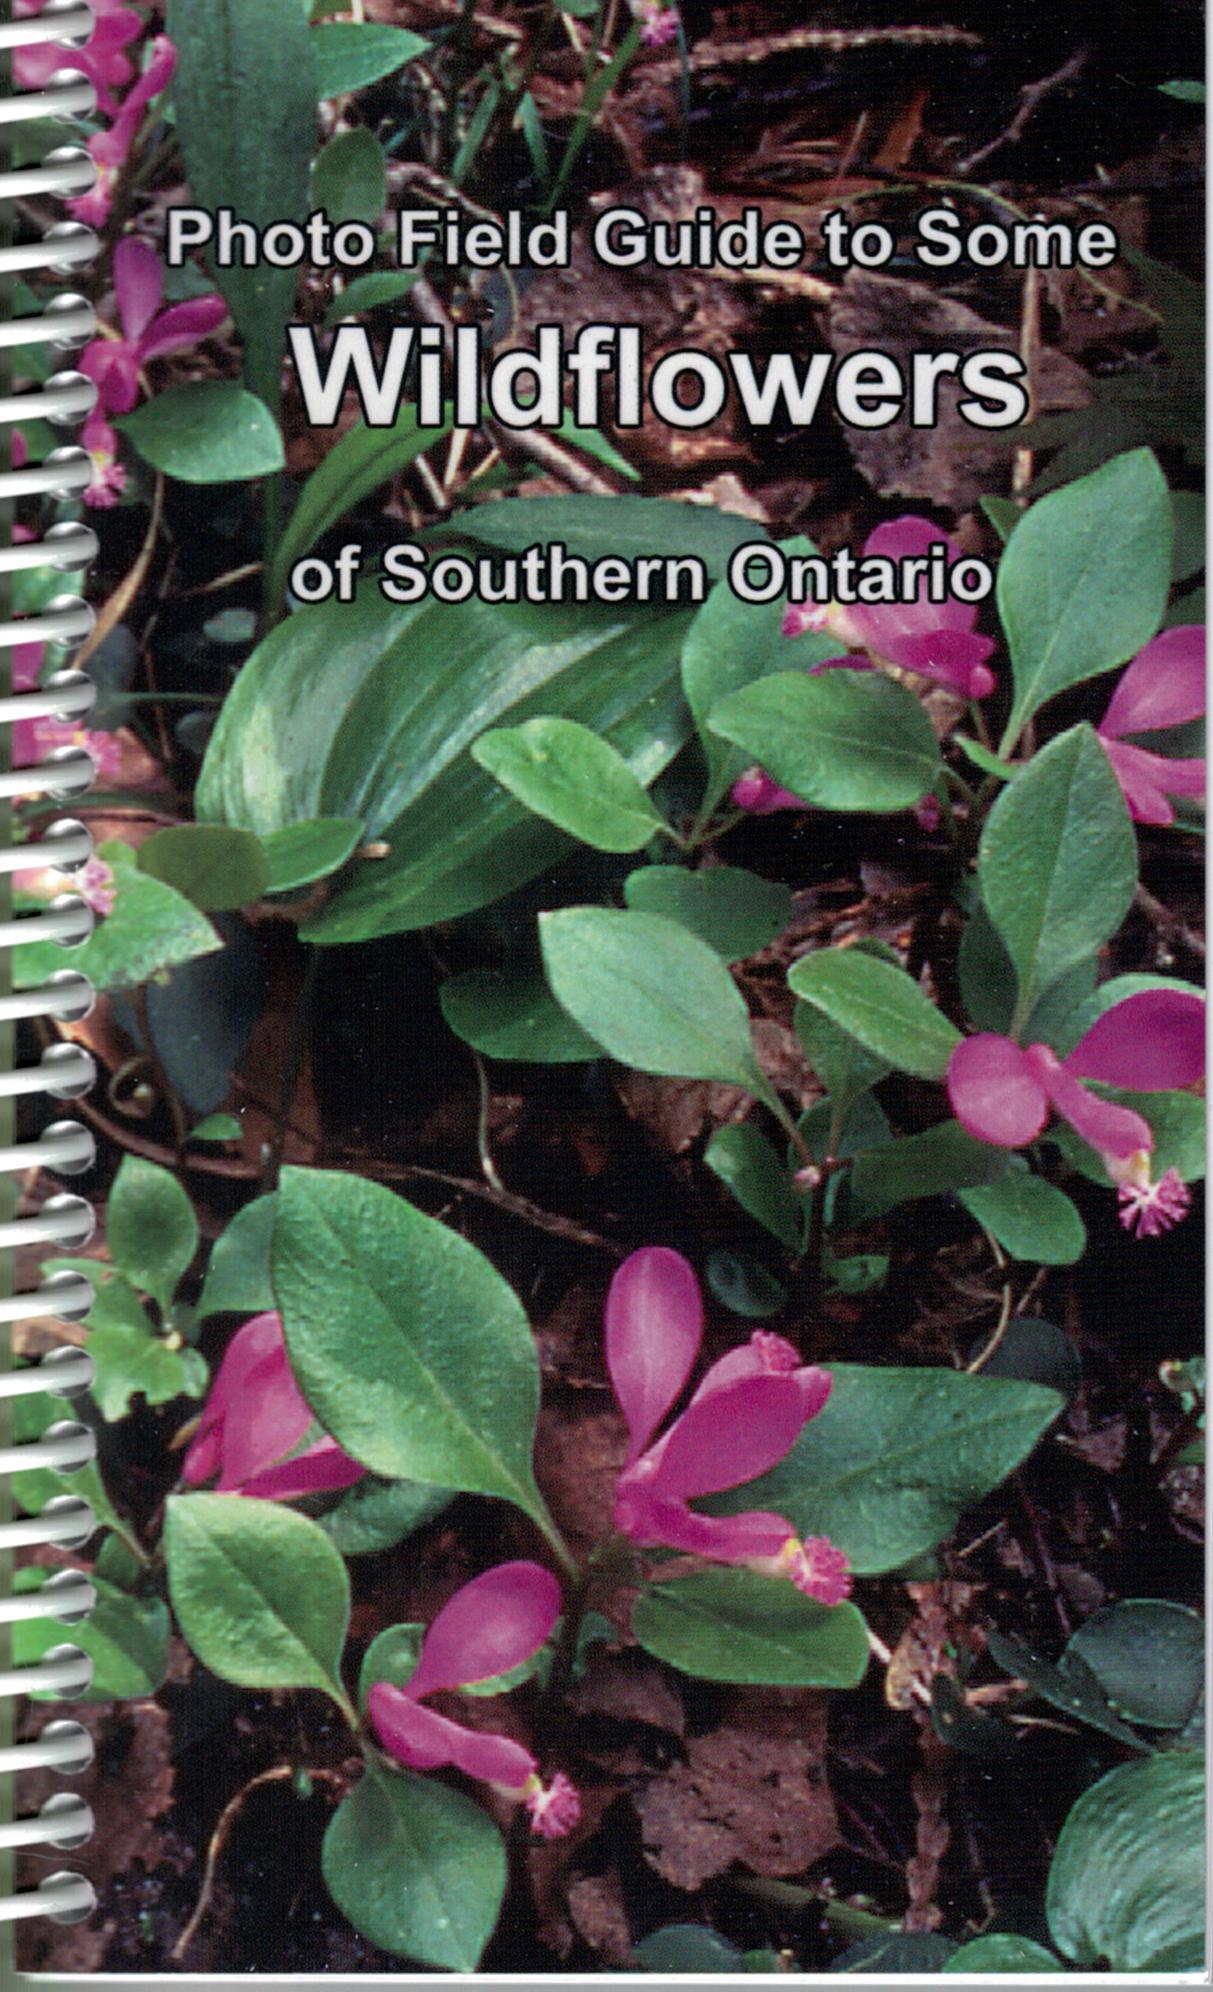 Photo Field Guide to Some Wildflowers of Southern Ontario